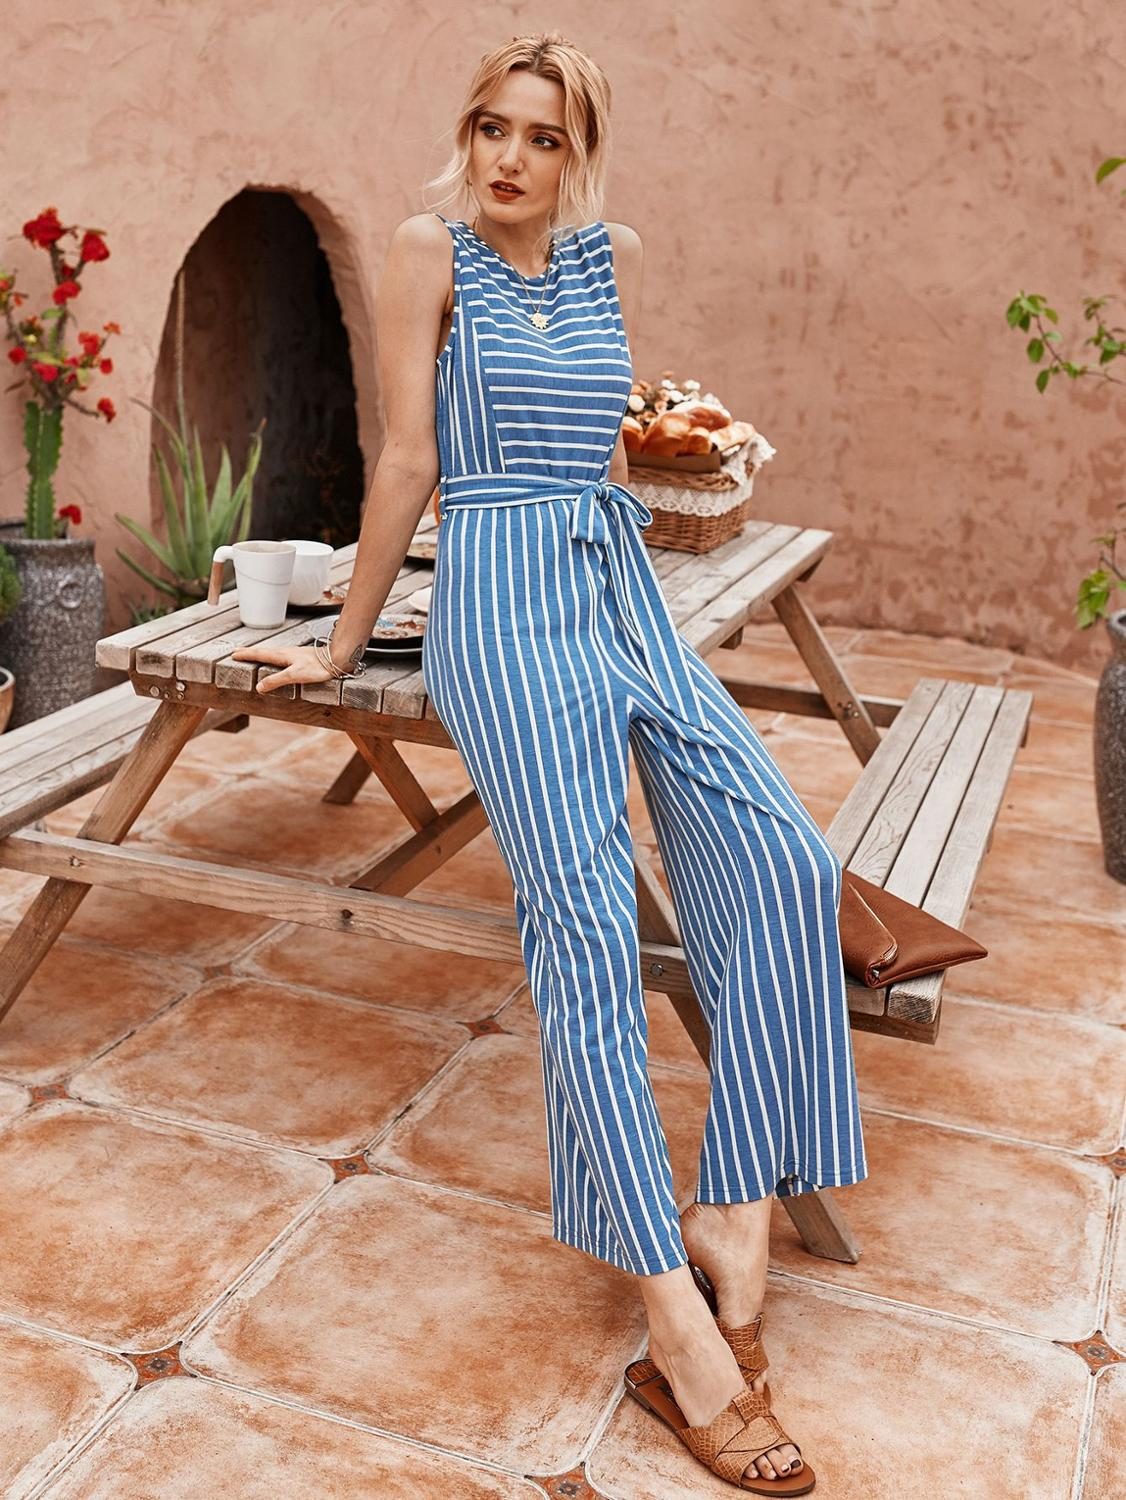 Summer Womens Jumpsuit Formal Elegant Trendy Casual Stripe Overalls For Lady Clothing Jump Suit Long Pants Plus Size Suit Boho